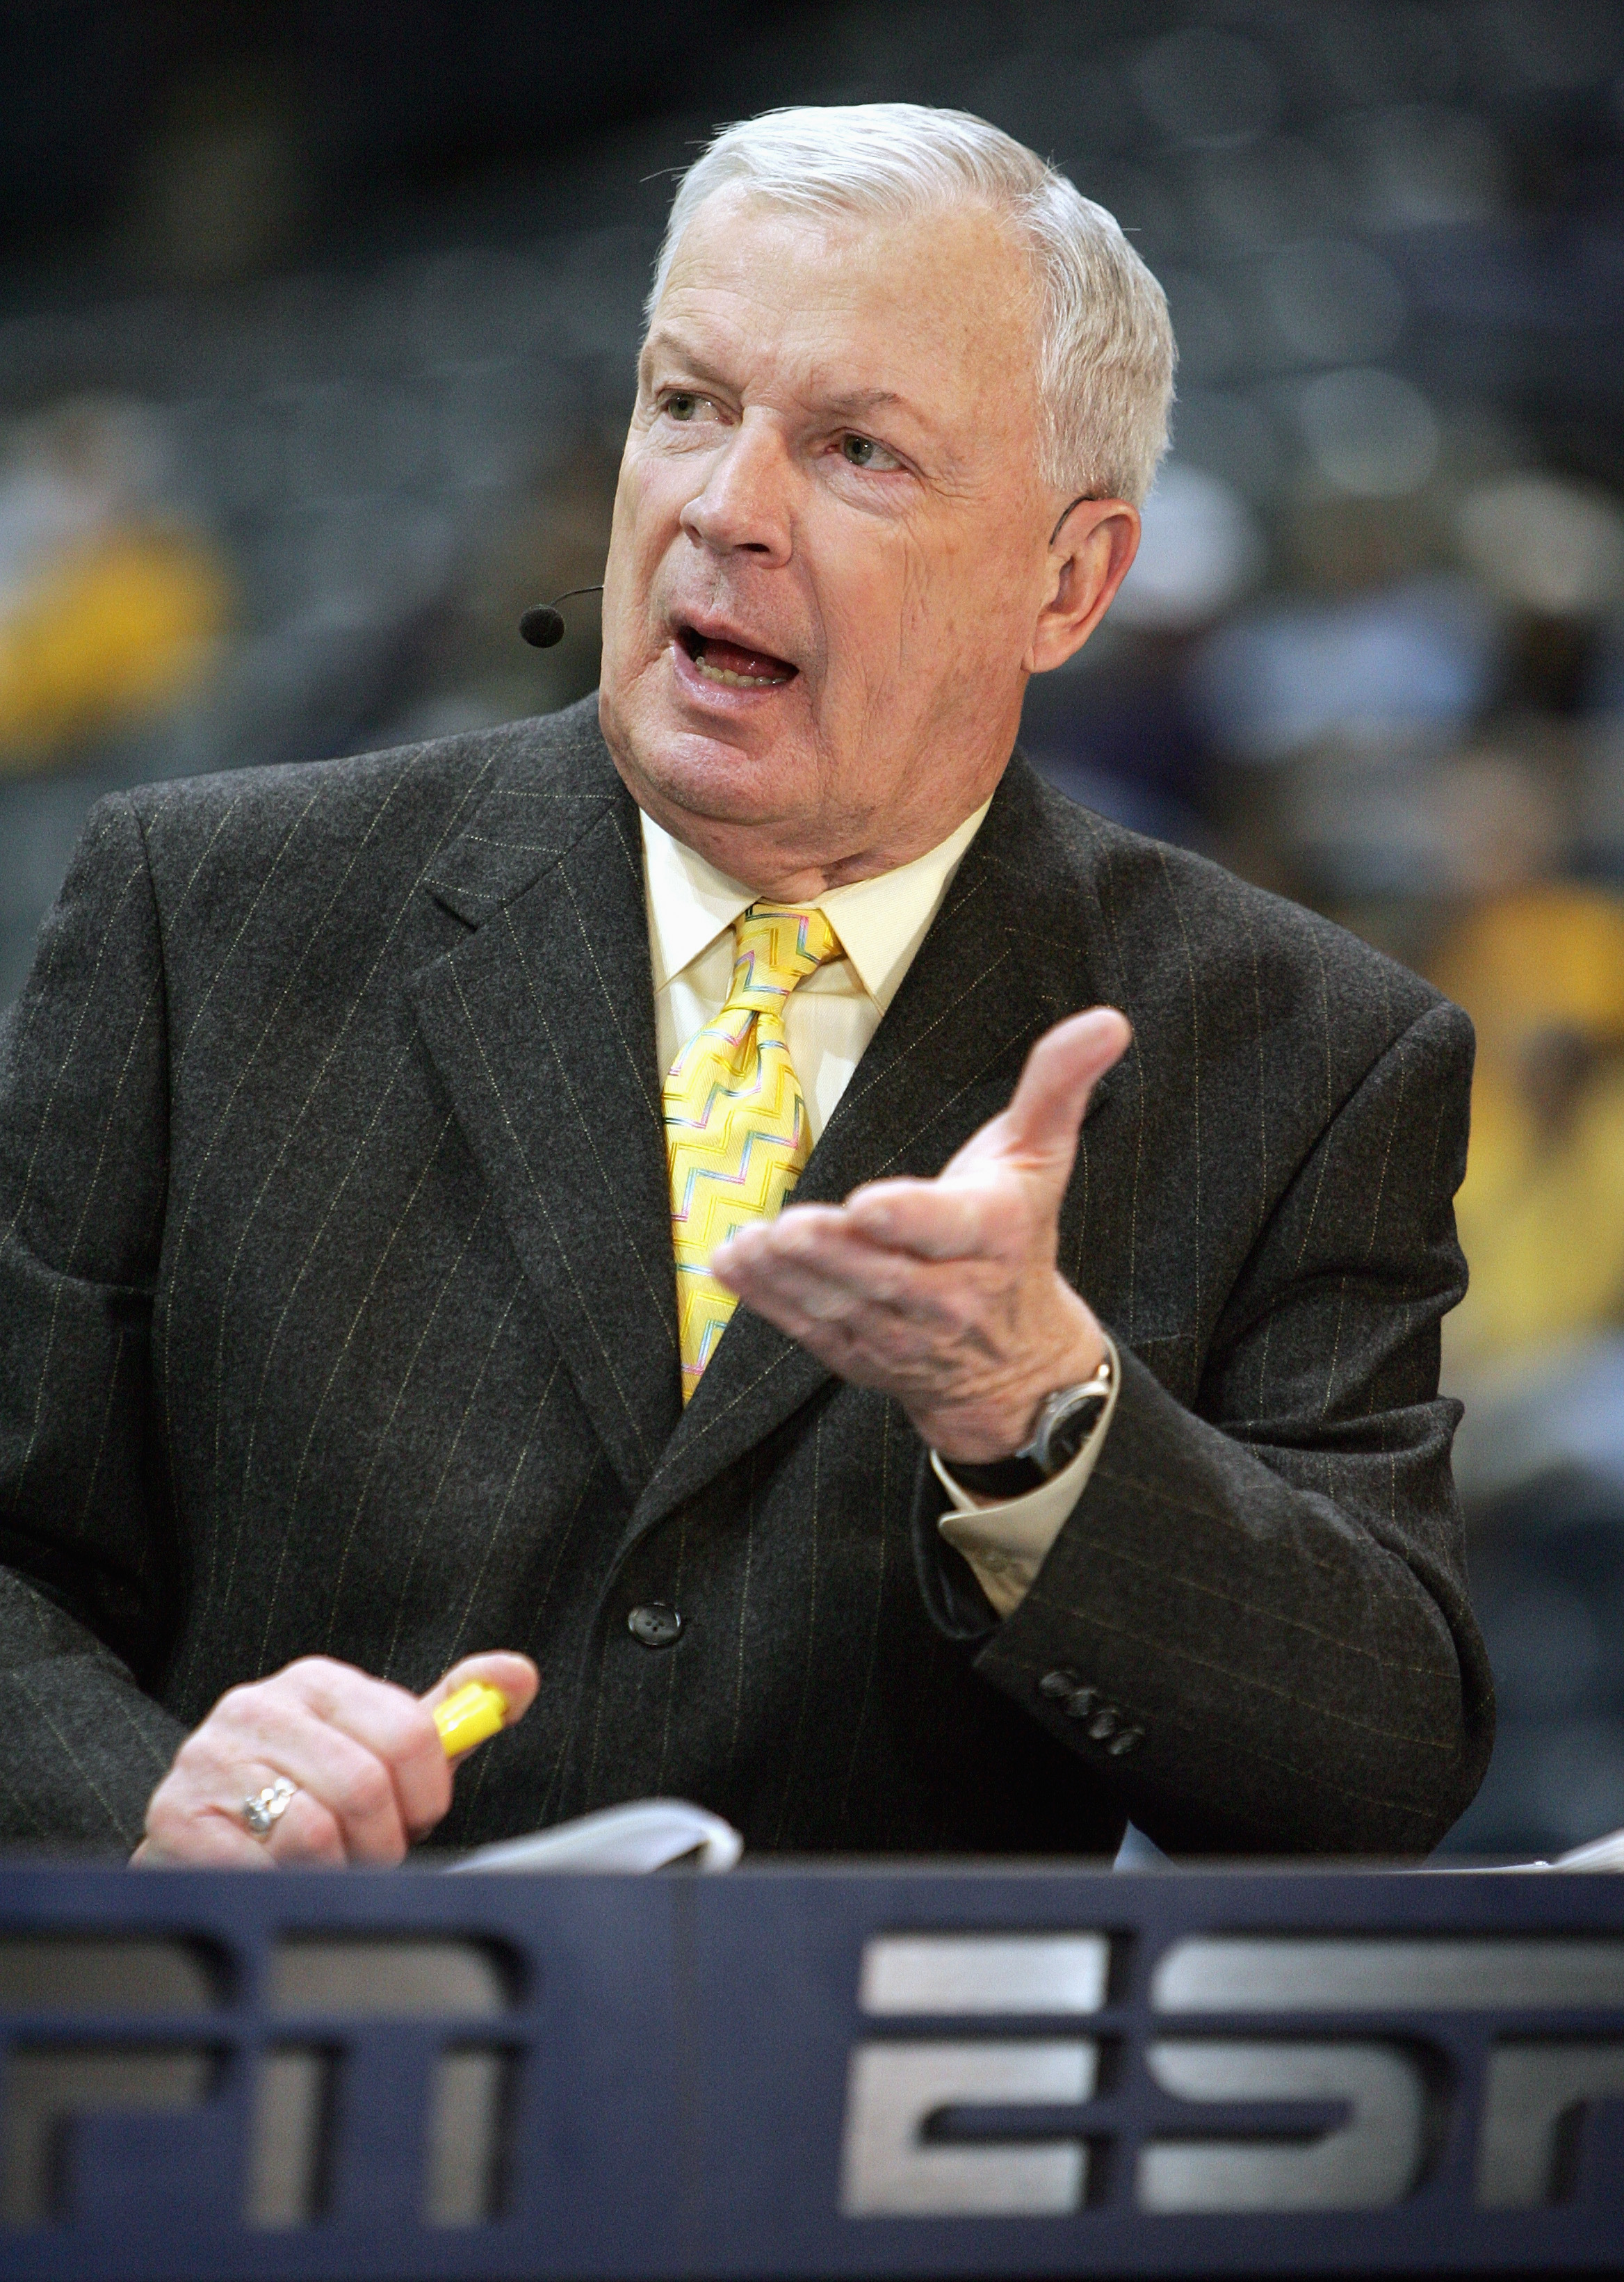 MILWAUKEE - MARCH 3: ESPN college basketball analyst Digger Phelps gives life commentary before the game between the Marquette Golden Eagles and the Pittsburgh Panthers on March 3, 2007 at the Bradley Center in Milwaukee, Wisconsin. (Photo by Jonathan Dan